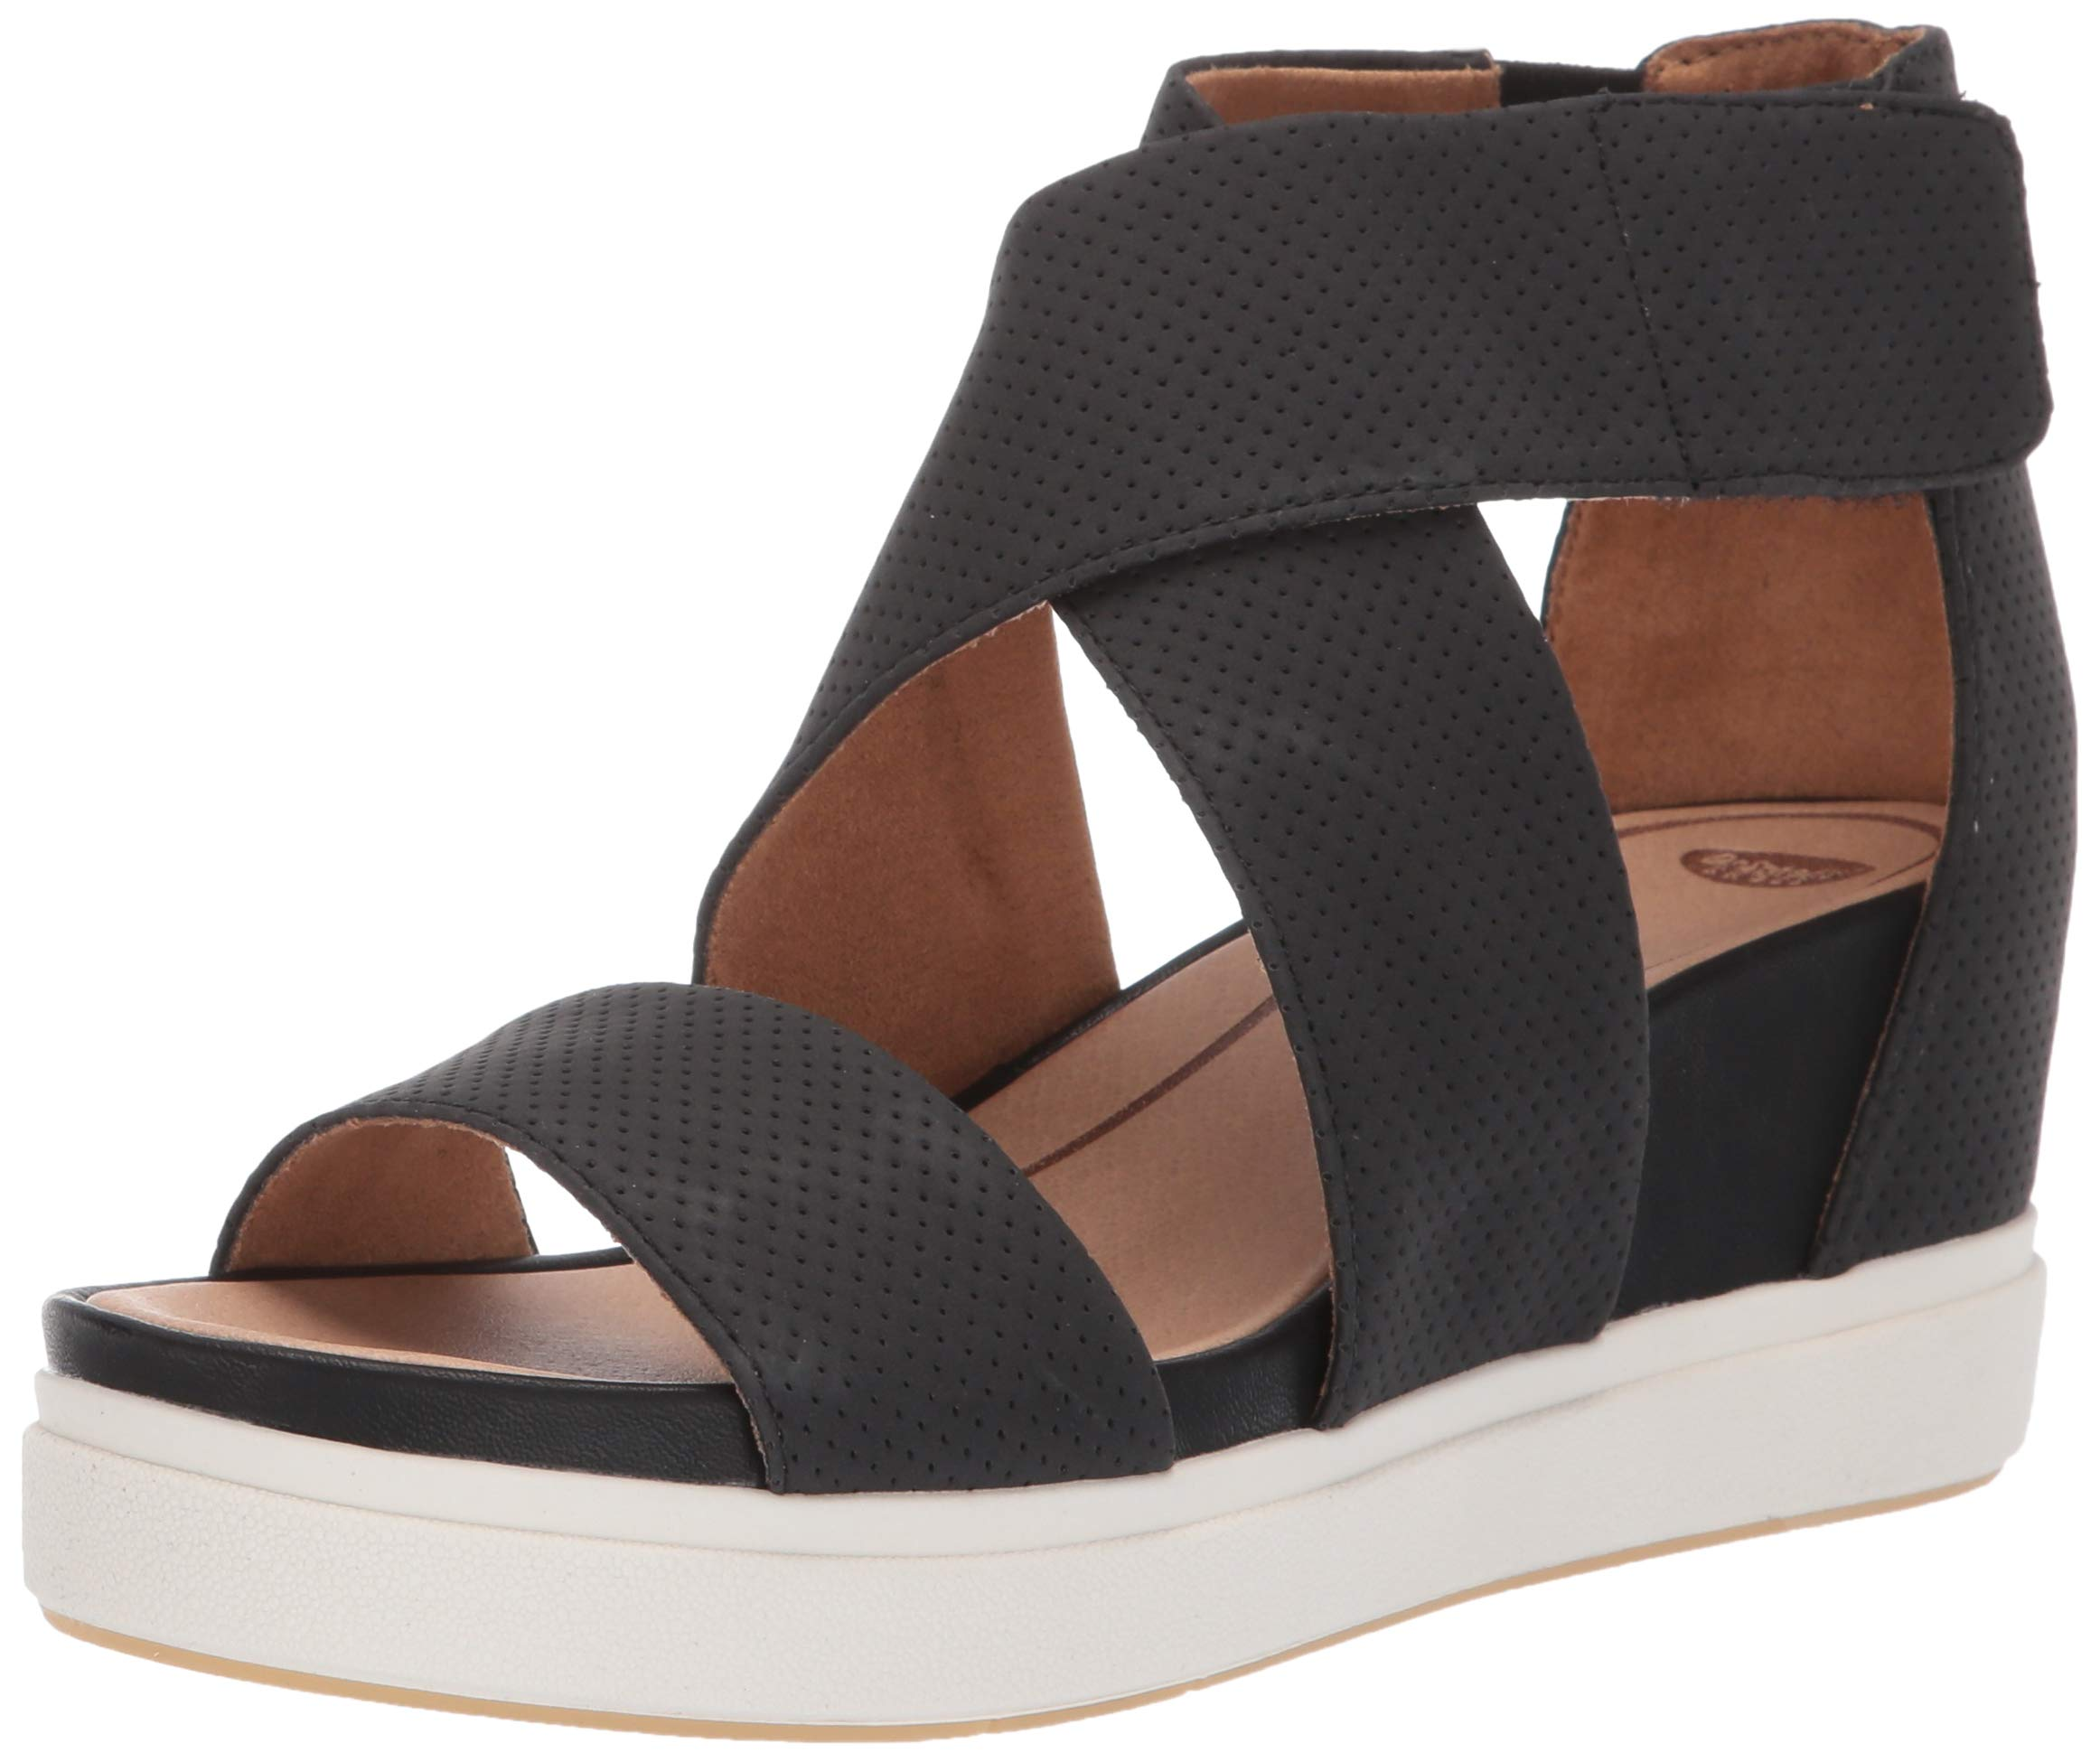 Dr. Scholl's Women's Sheena Wedge Sandal Black Smooth Perforated 8 M US by Dr. Scholl's